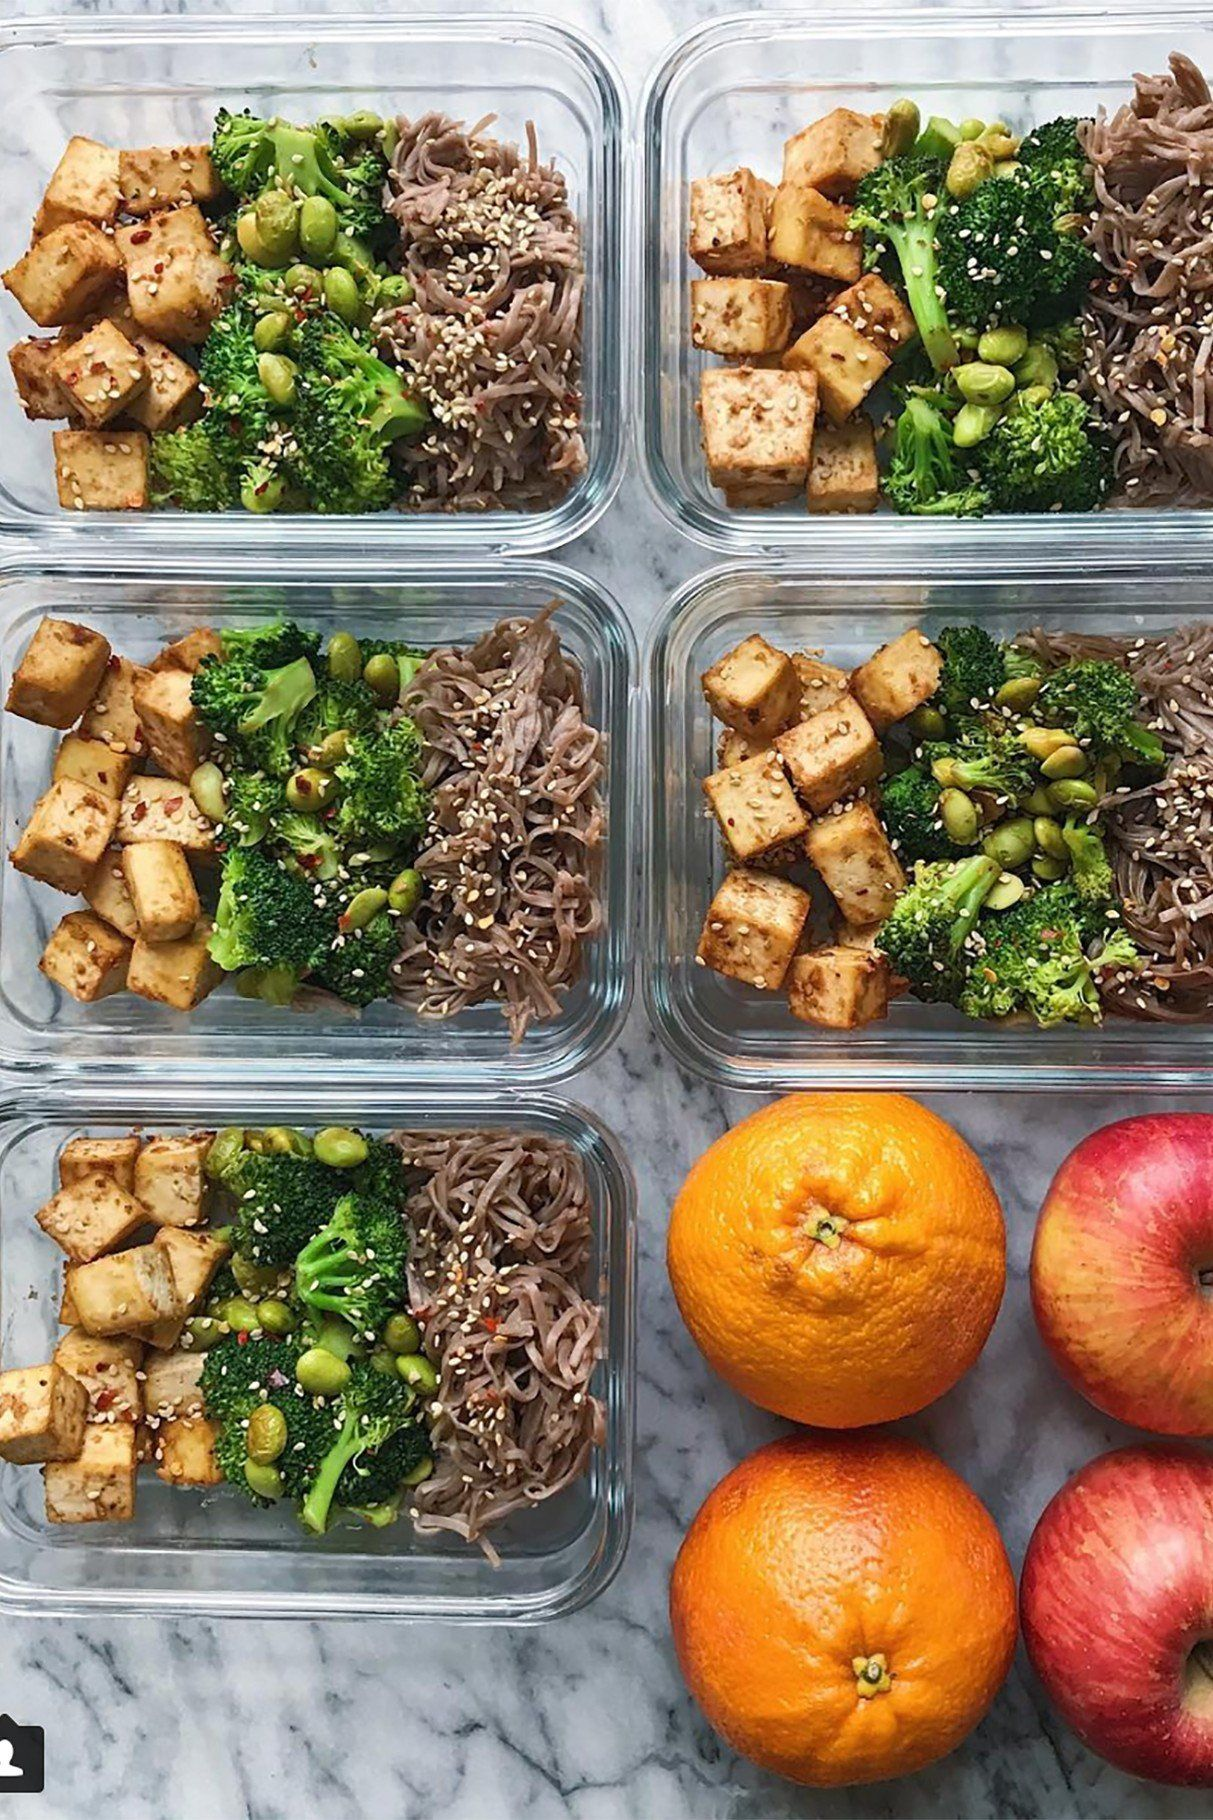 lose weight by planning ahead with these 45 lunch meal-prep ideas